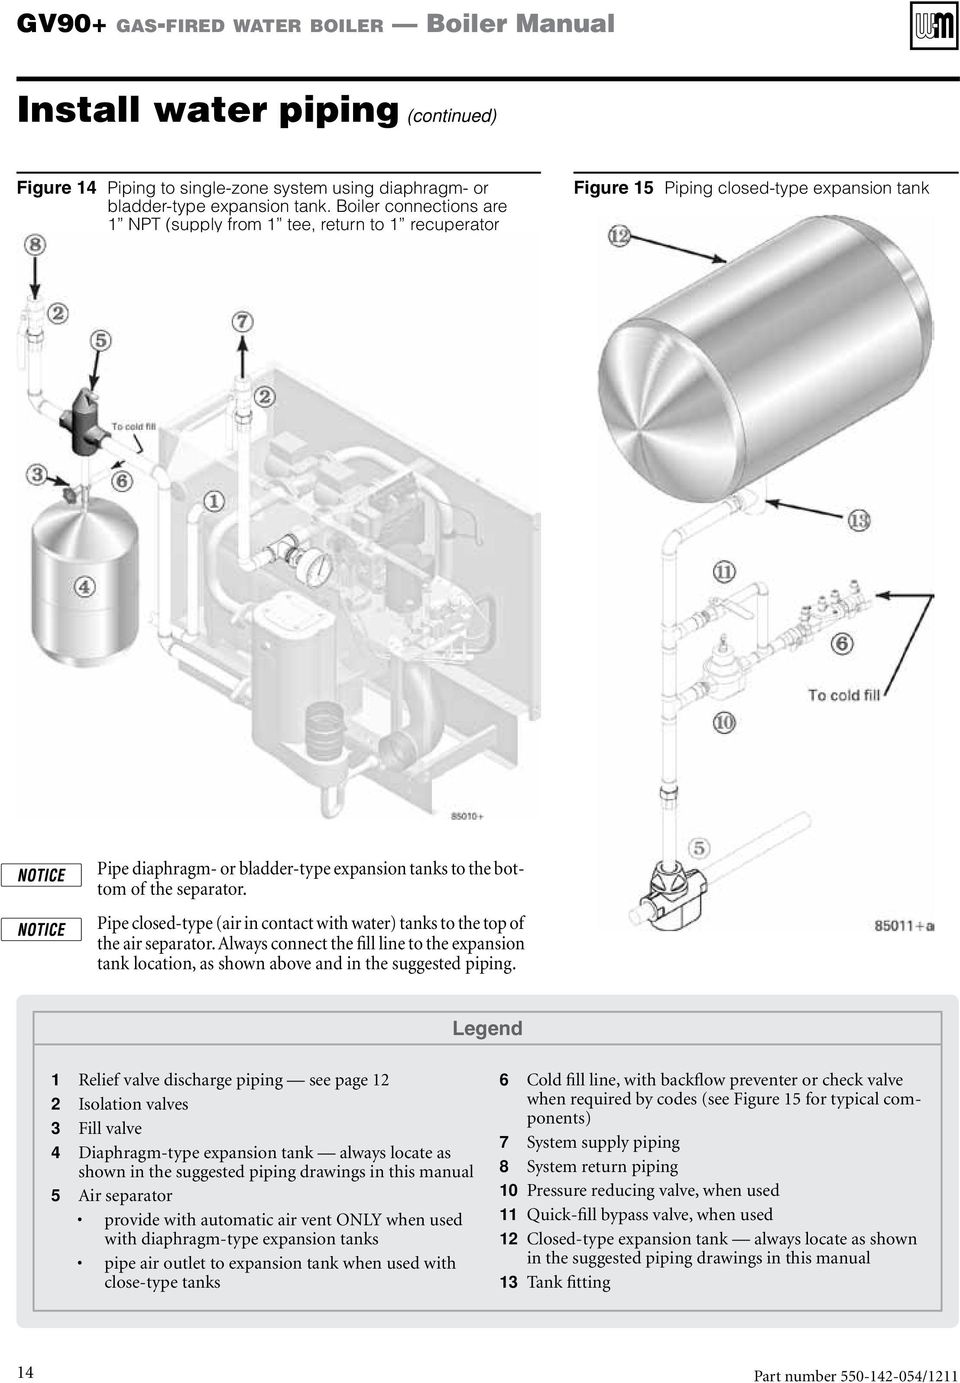 Amazing Boiler Maintenance Manual Mold - Electrical Diagram Ideas ...